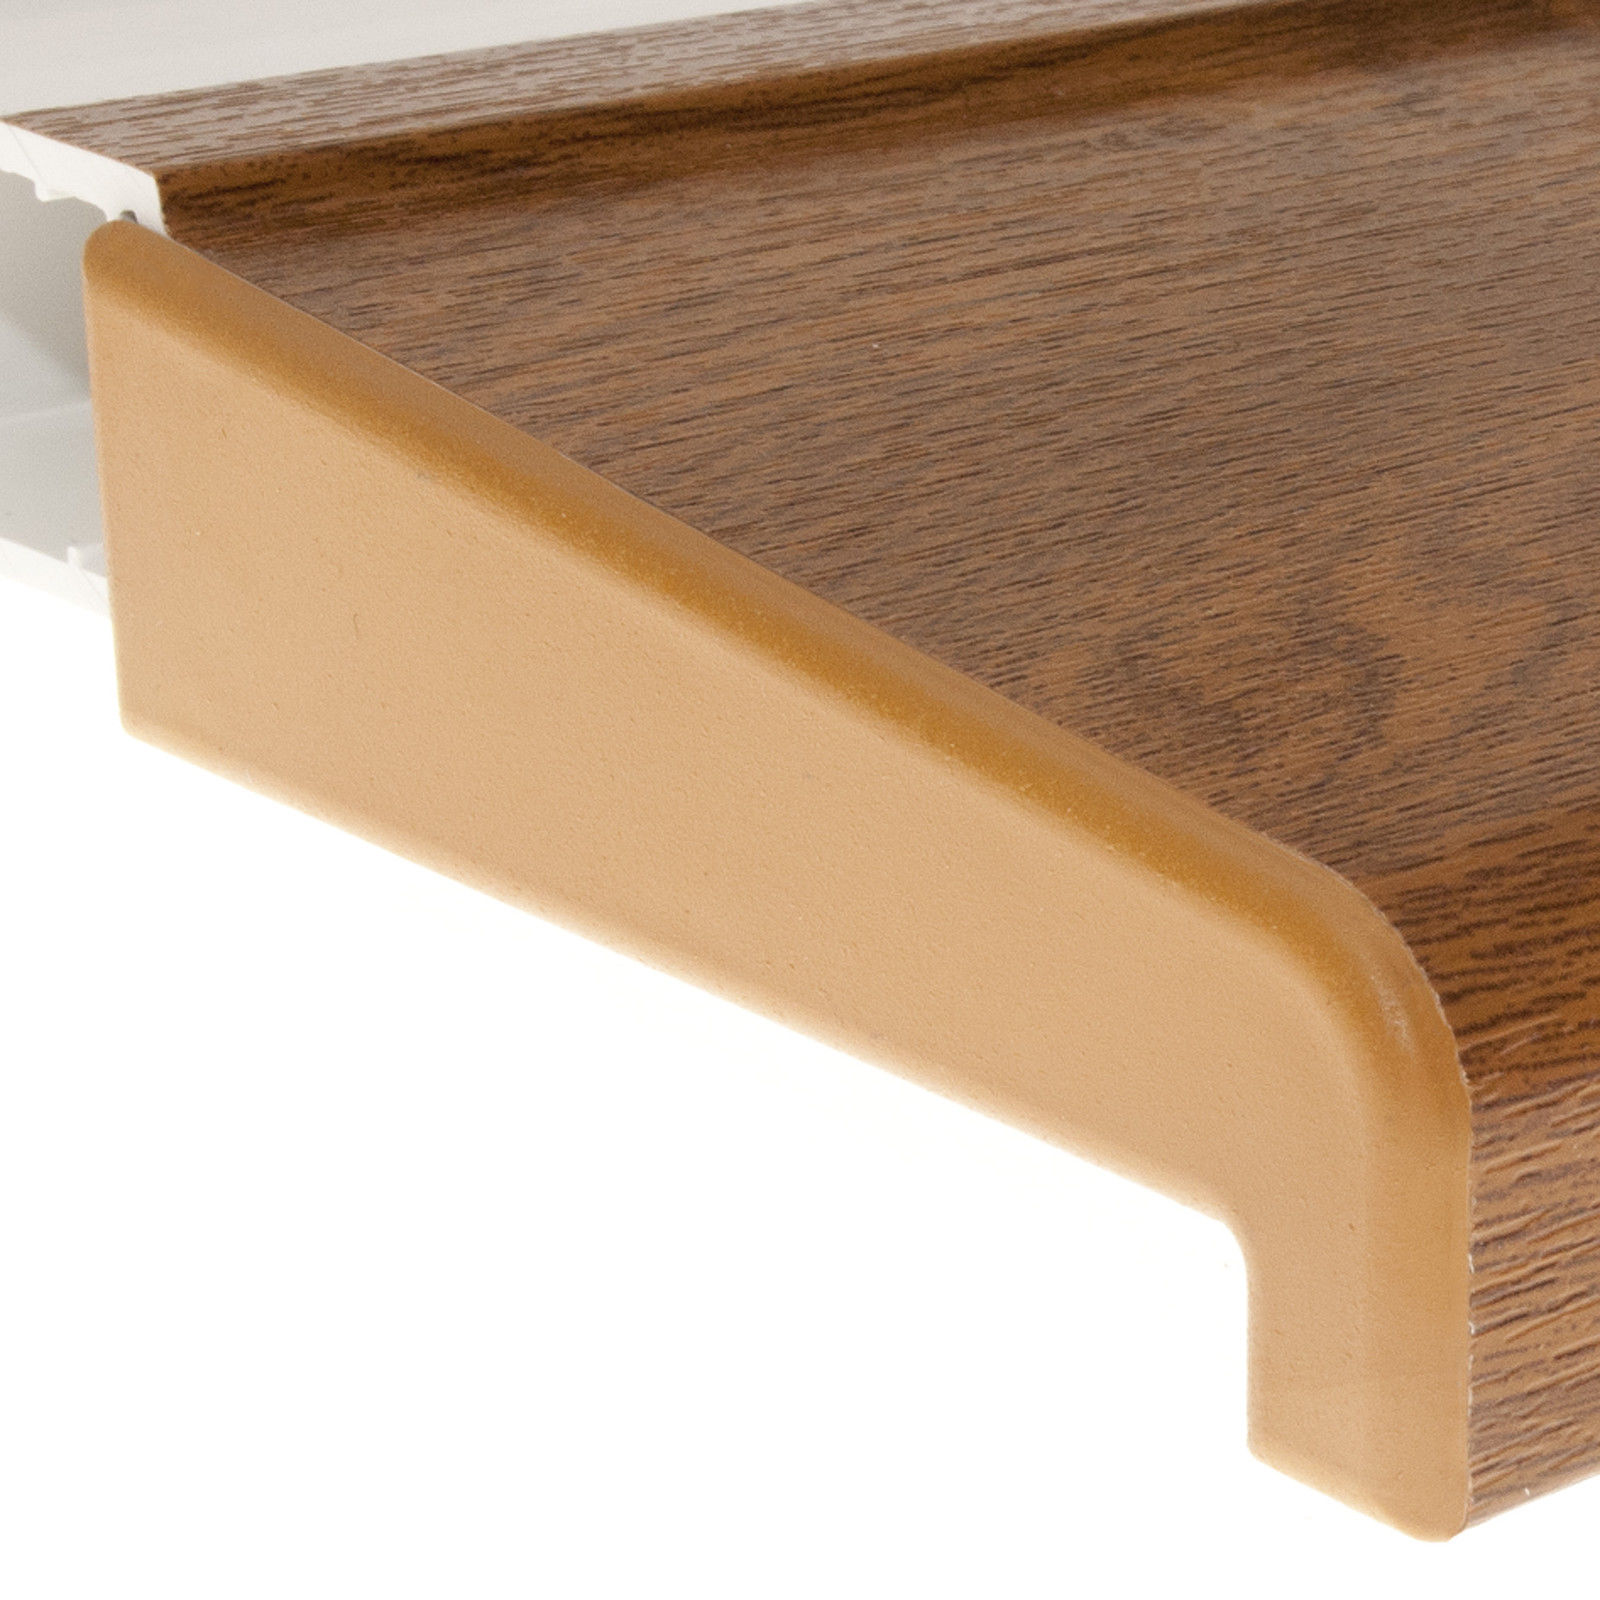 150mm uPVC End Cap for Window Cill Sill